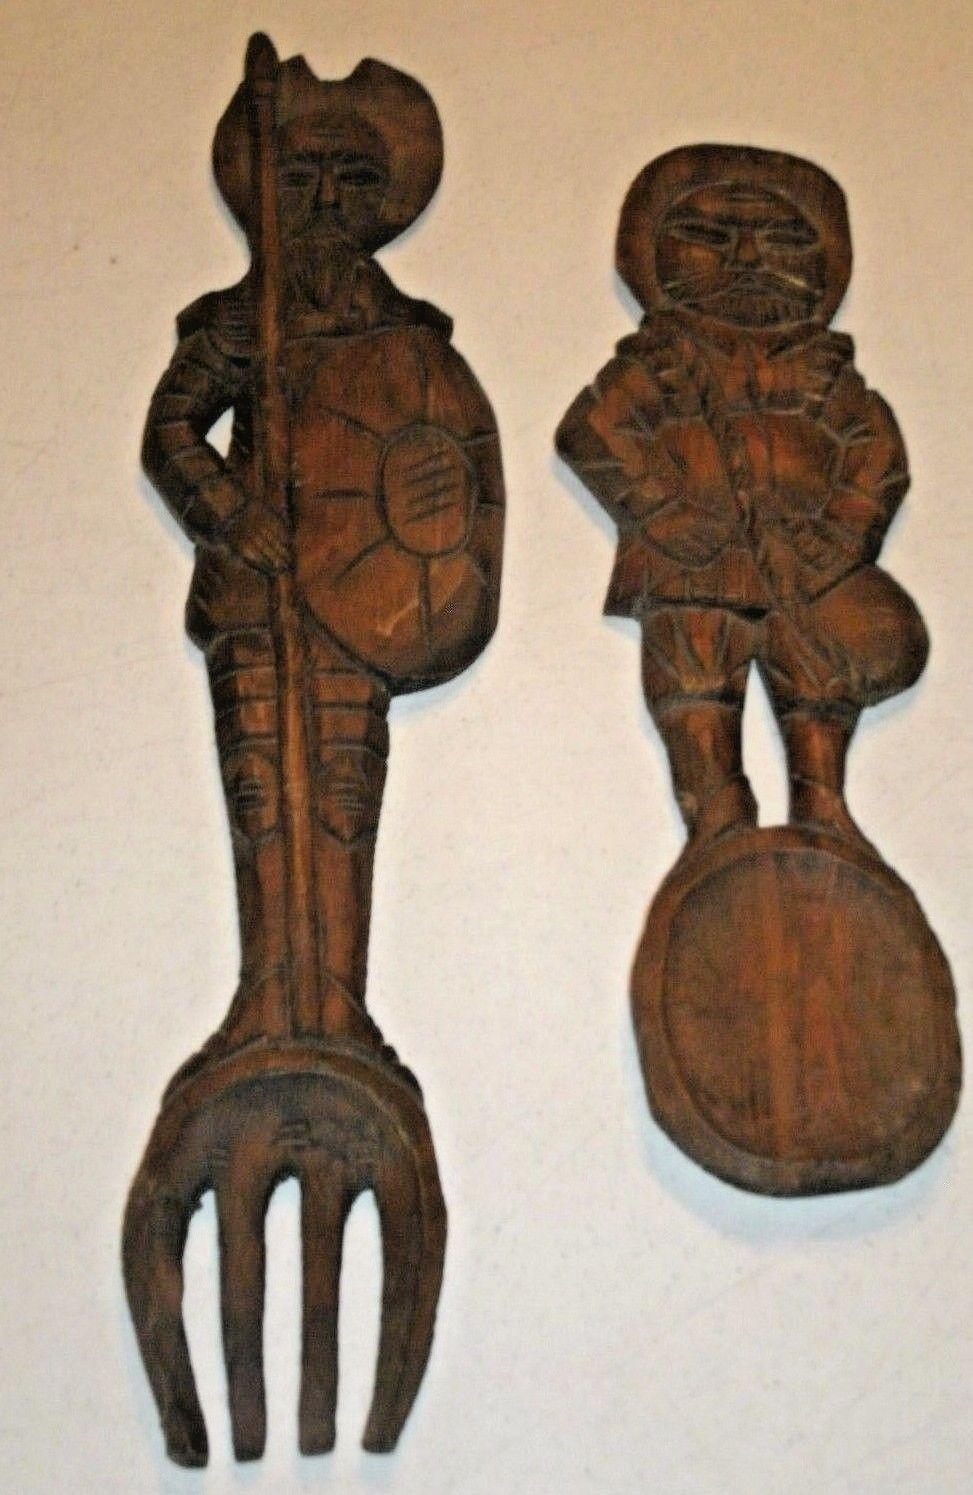 Don Quixote Sancho Panza Carved Set Of Carved Wood Fork Spoon Wall Pertaining To Wooden Fork And Spoon Wall Art (View 7 of 20)